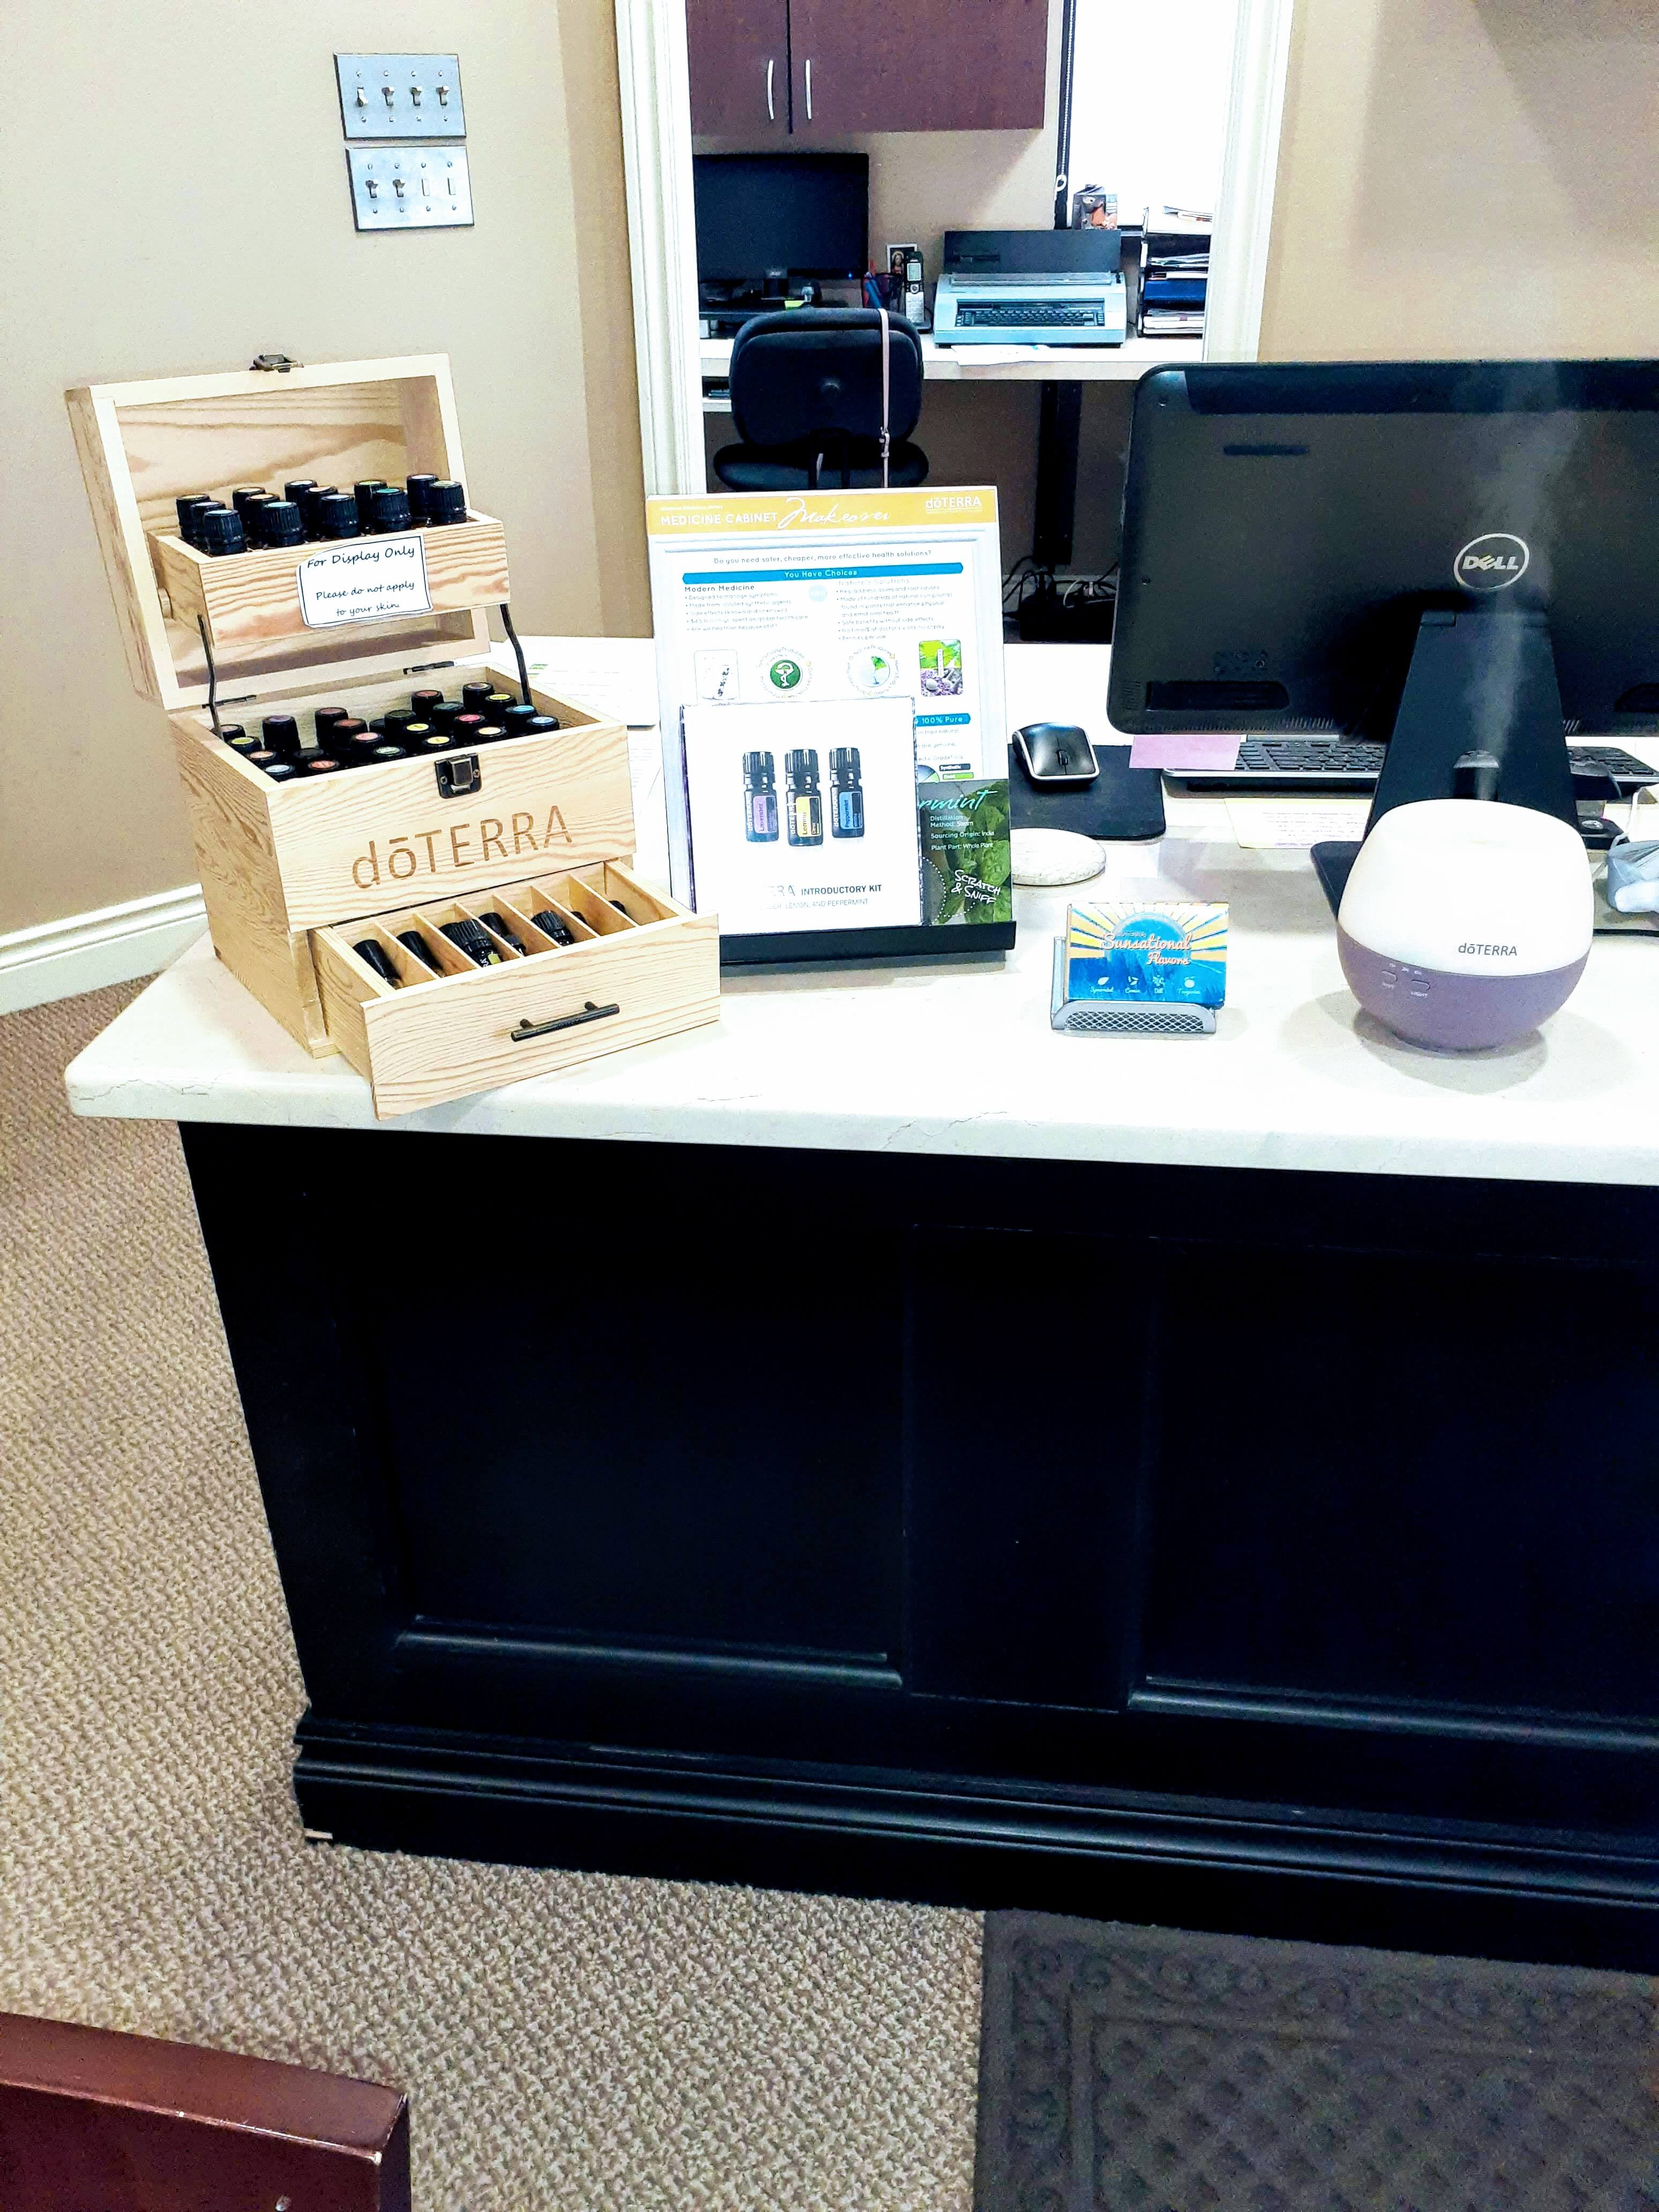 front desk with doterra essential oils on display